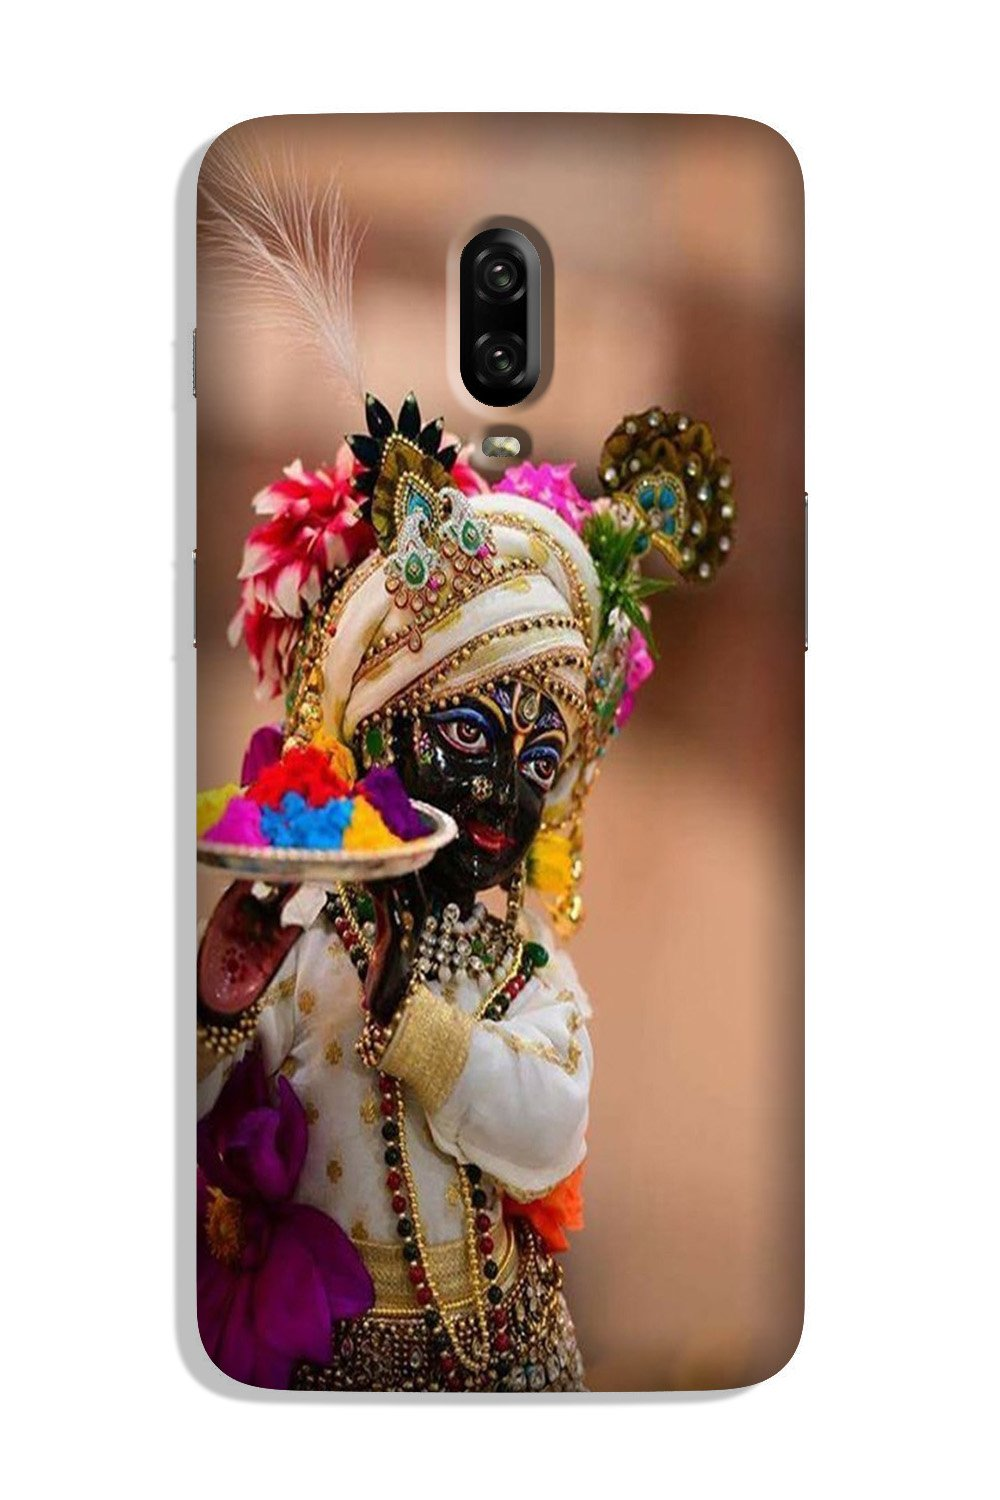 Lord Krishna2 Case for OnePlus 7